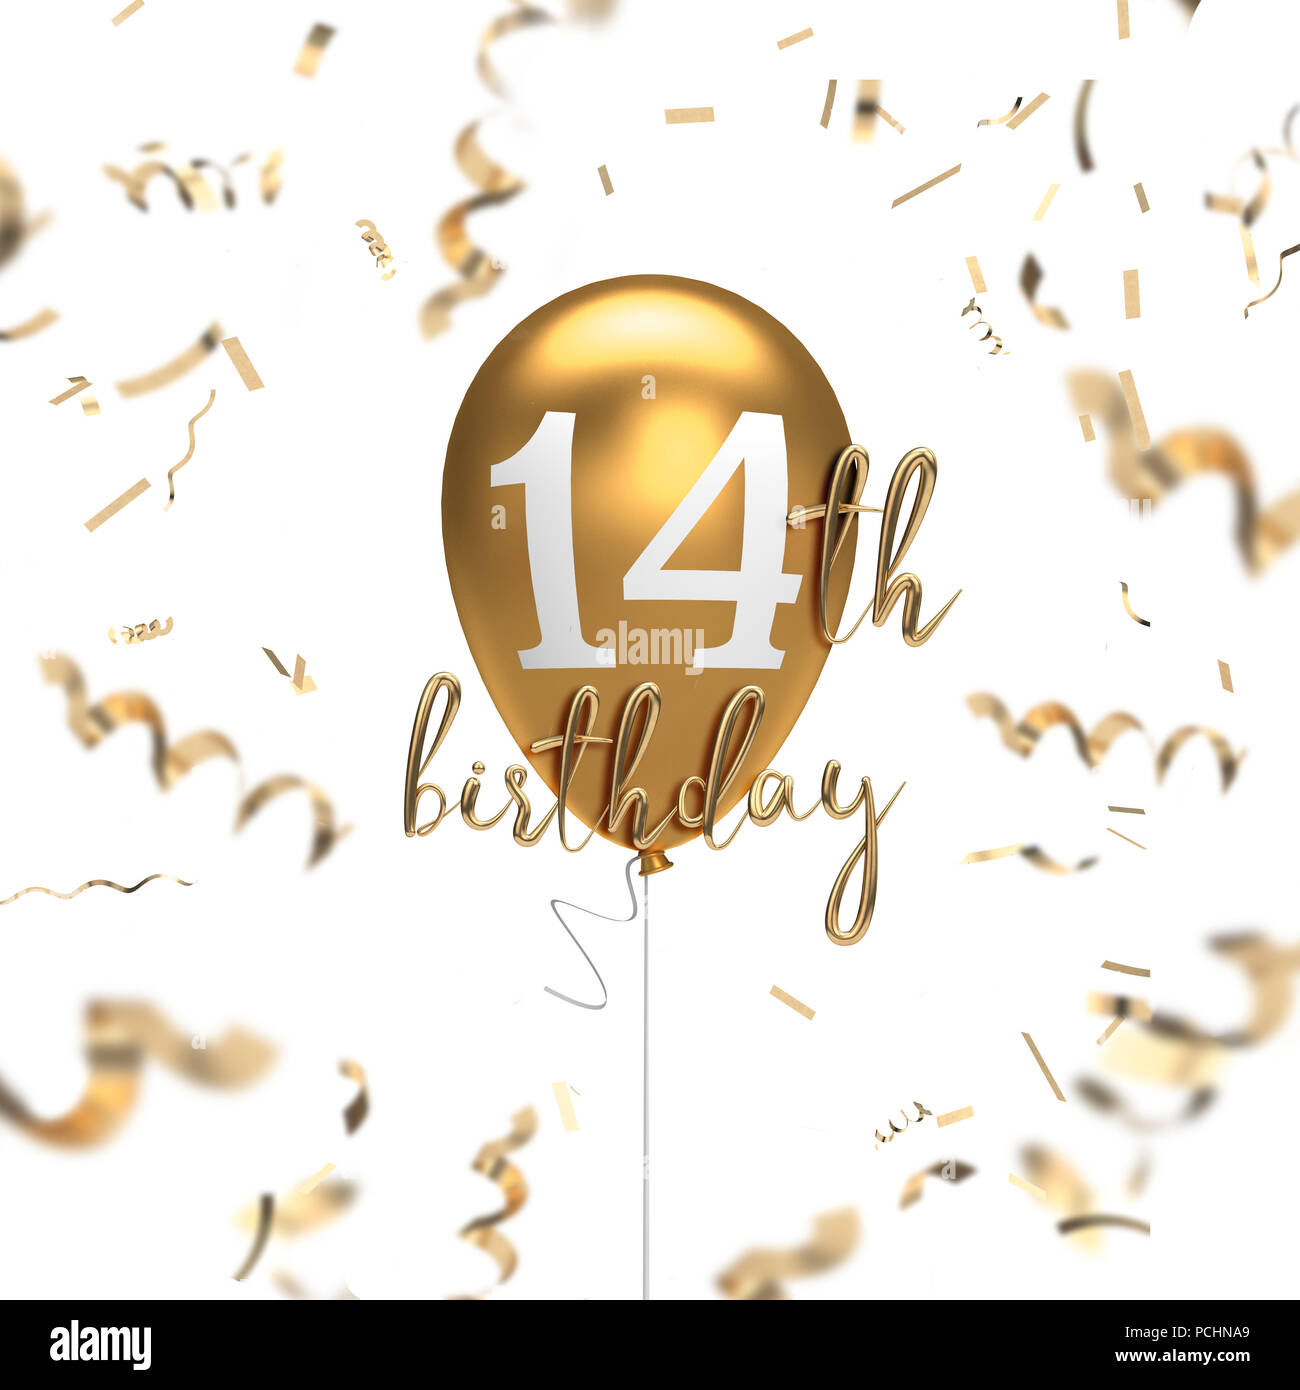 happy 14th birthday gold balloon greeting background  3d